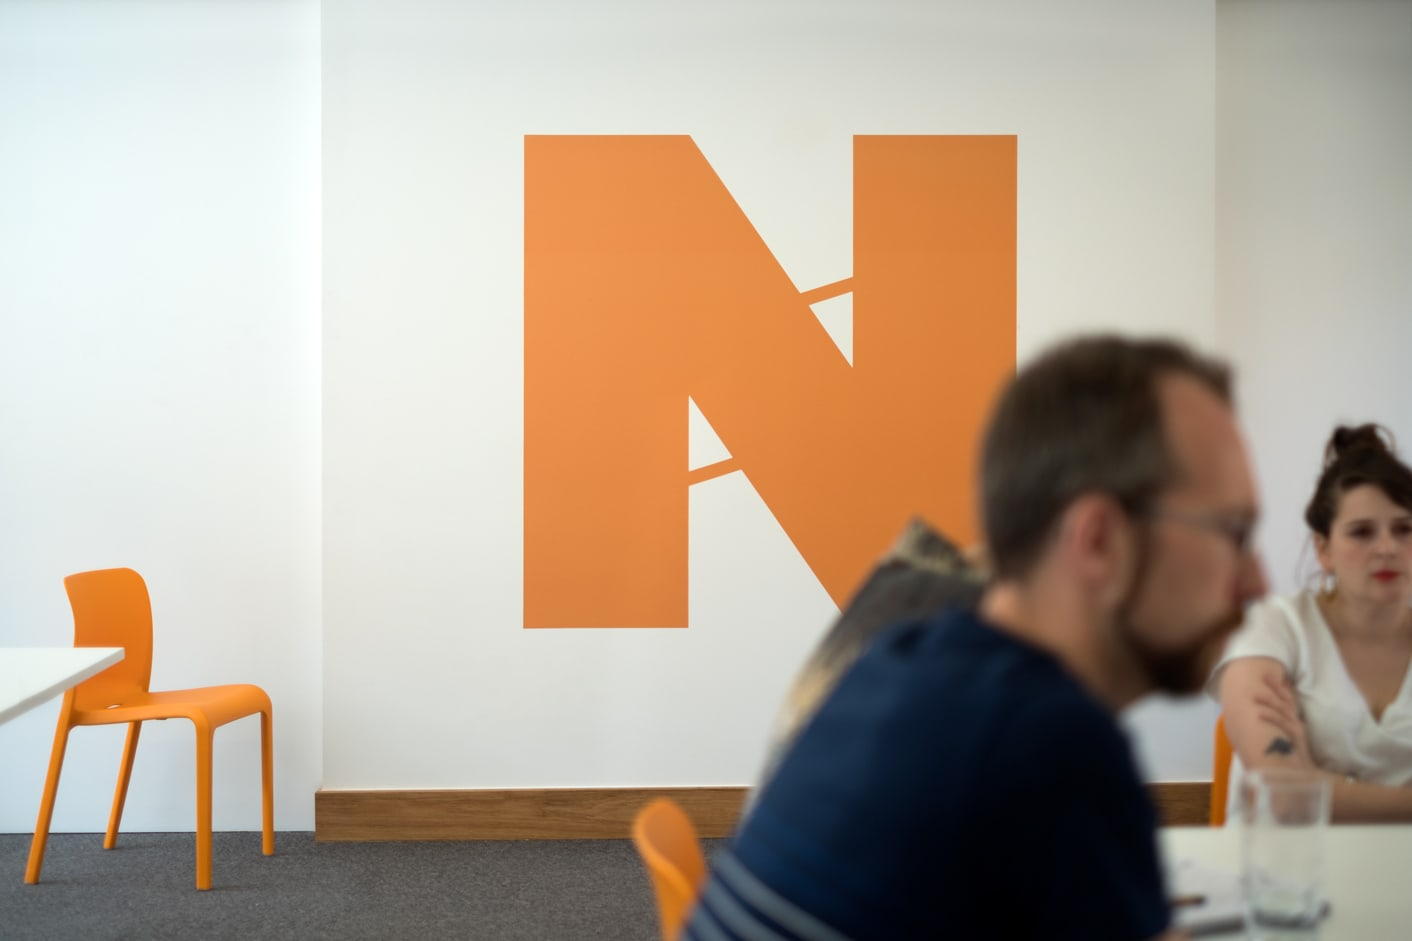 National Centre for Writing branded interior graphics